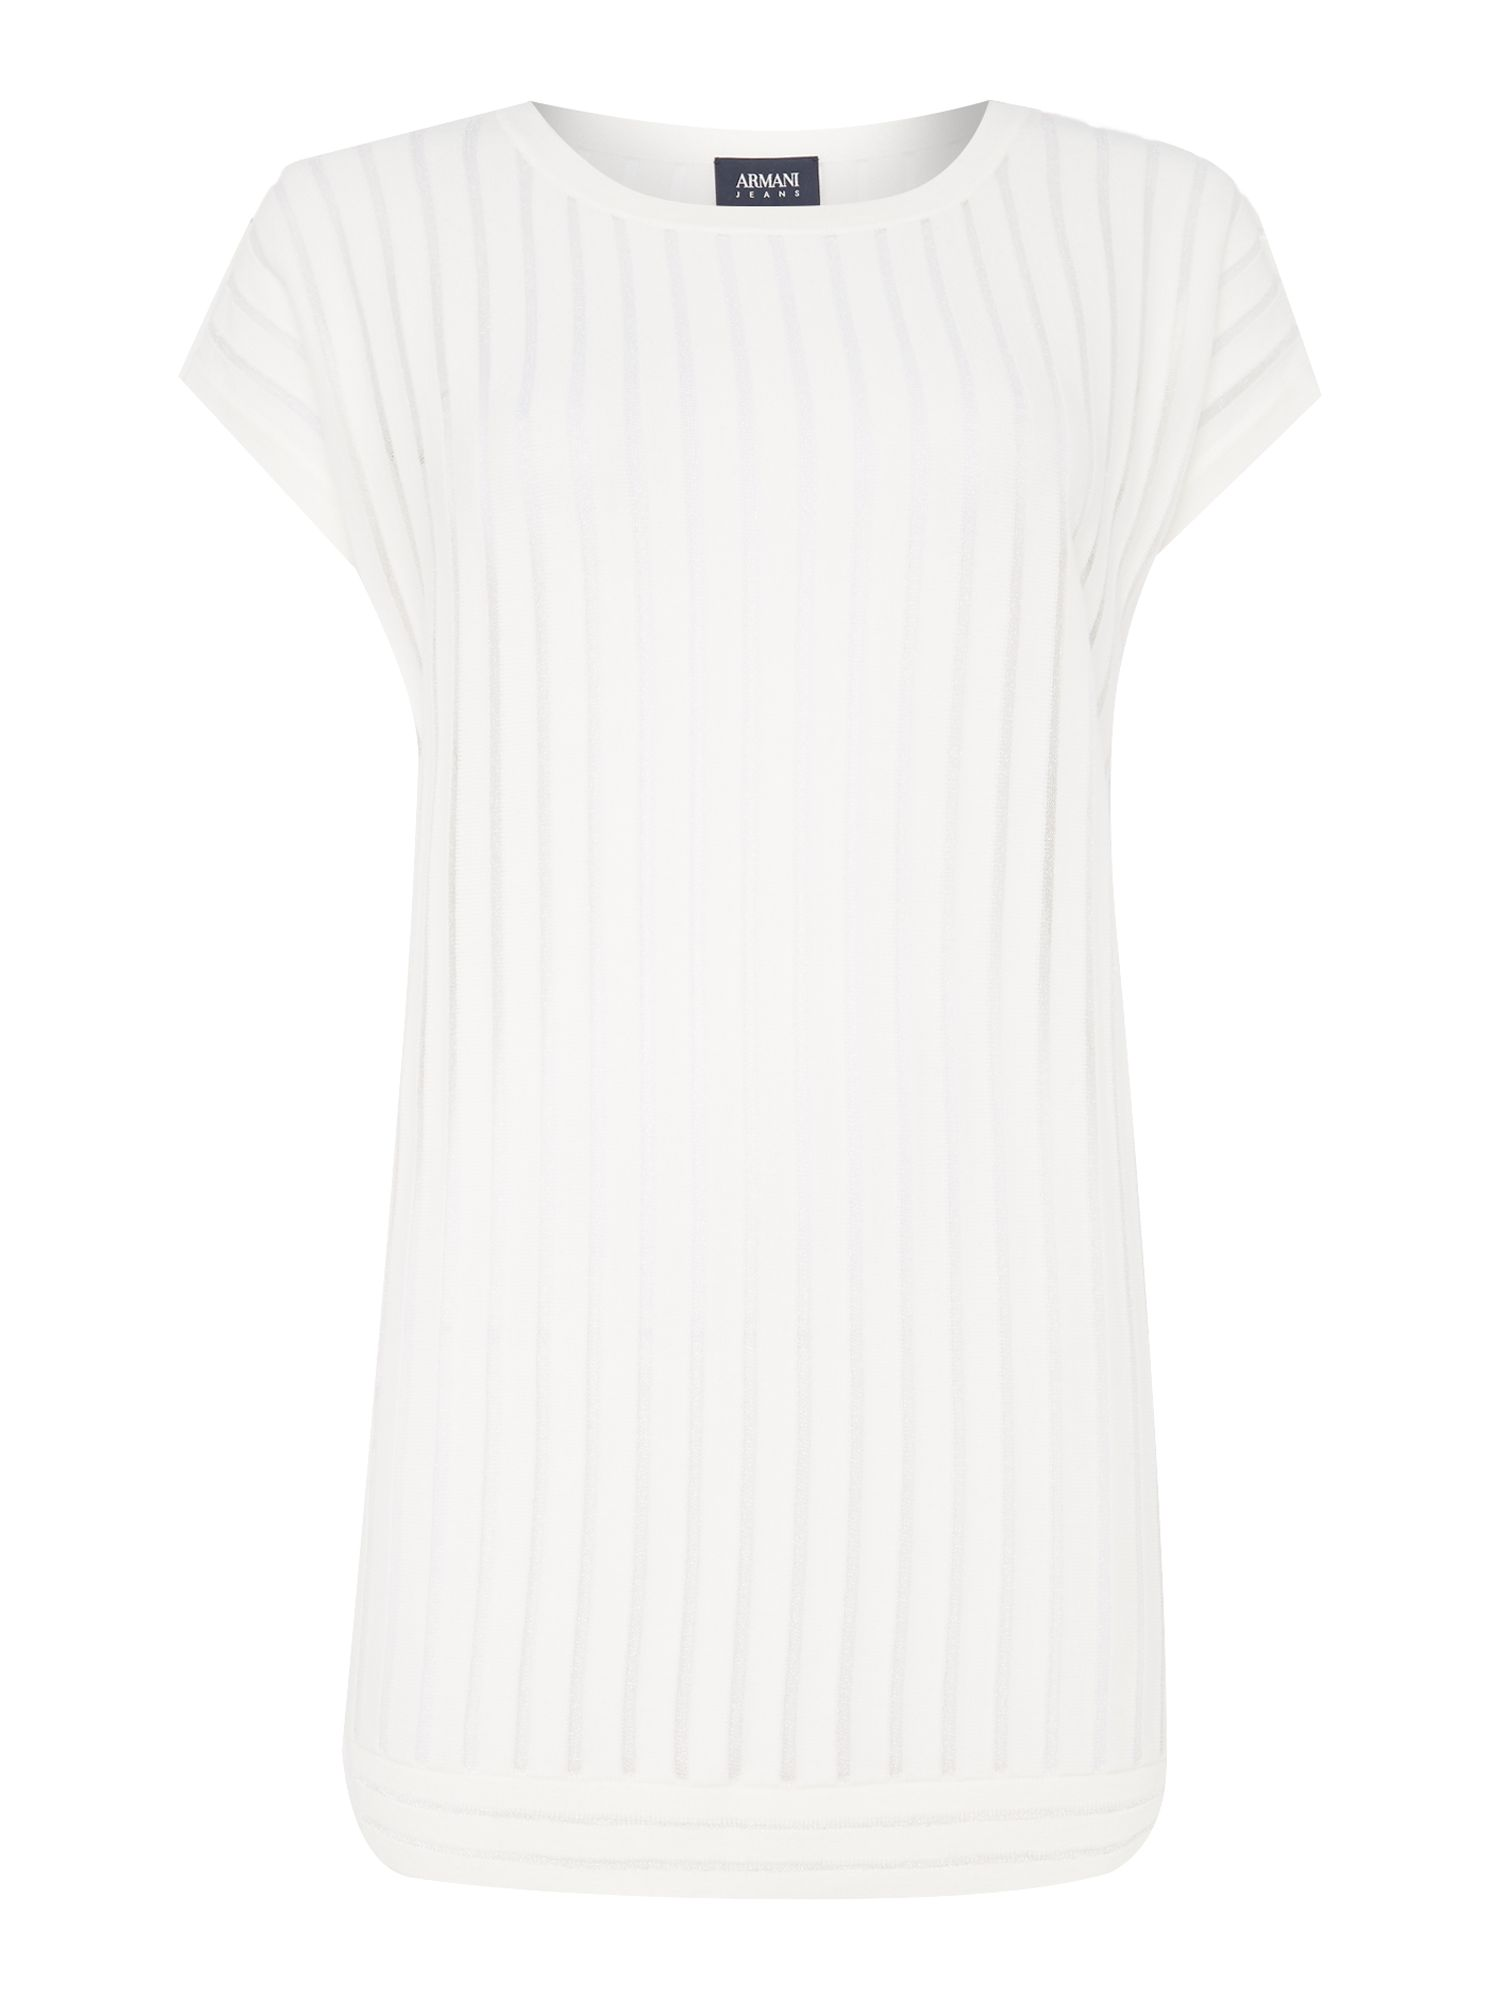 Armani Jeans Sleeveless ribbed see through top in bianco latte, White